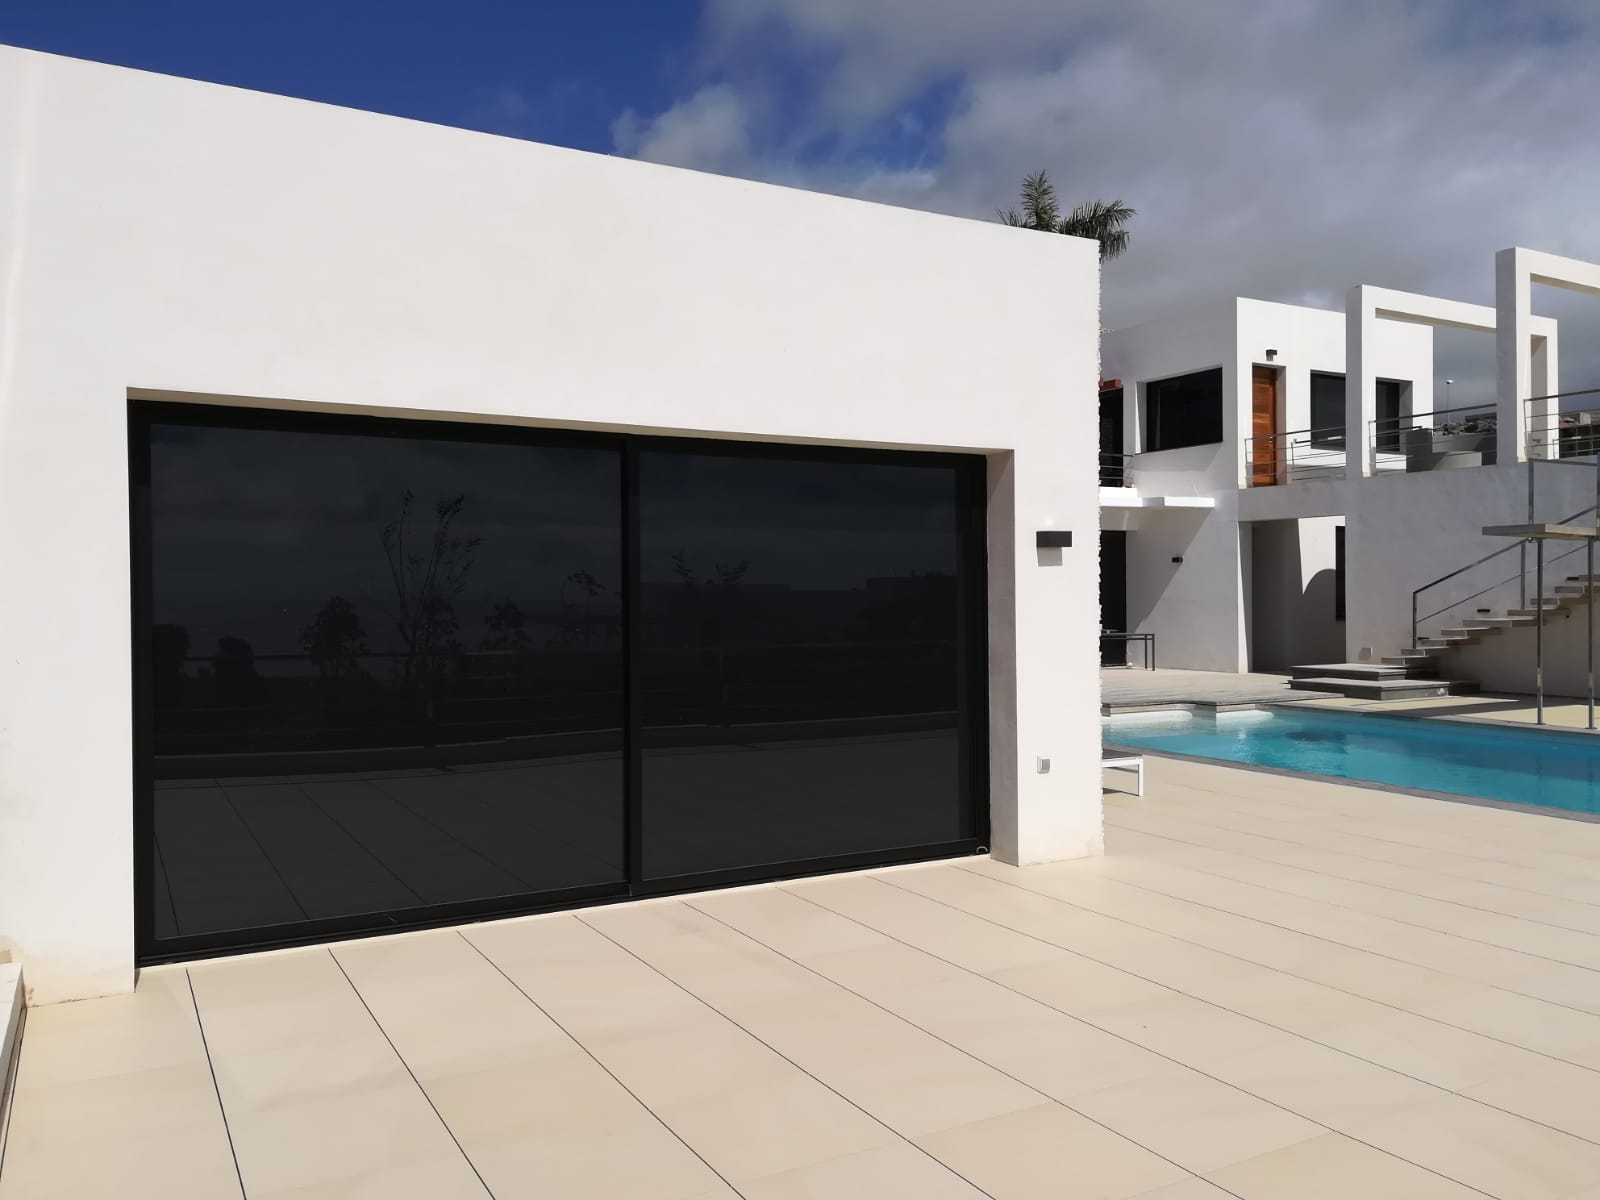 Properties for Sale in Tenerife, Canary Islands, Spain | SylkWayStar Real Estate. Luxury Villa Golf Costa Adeje. Image-24137